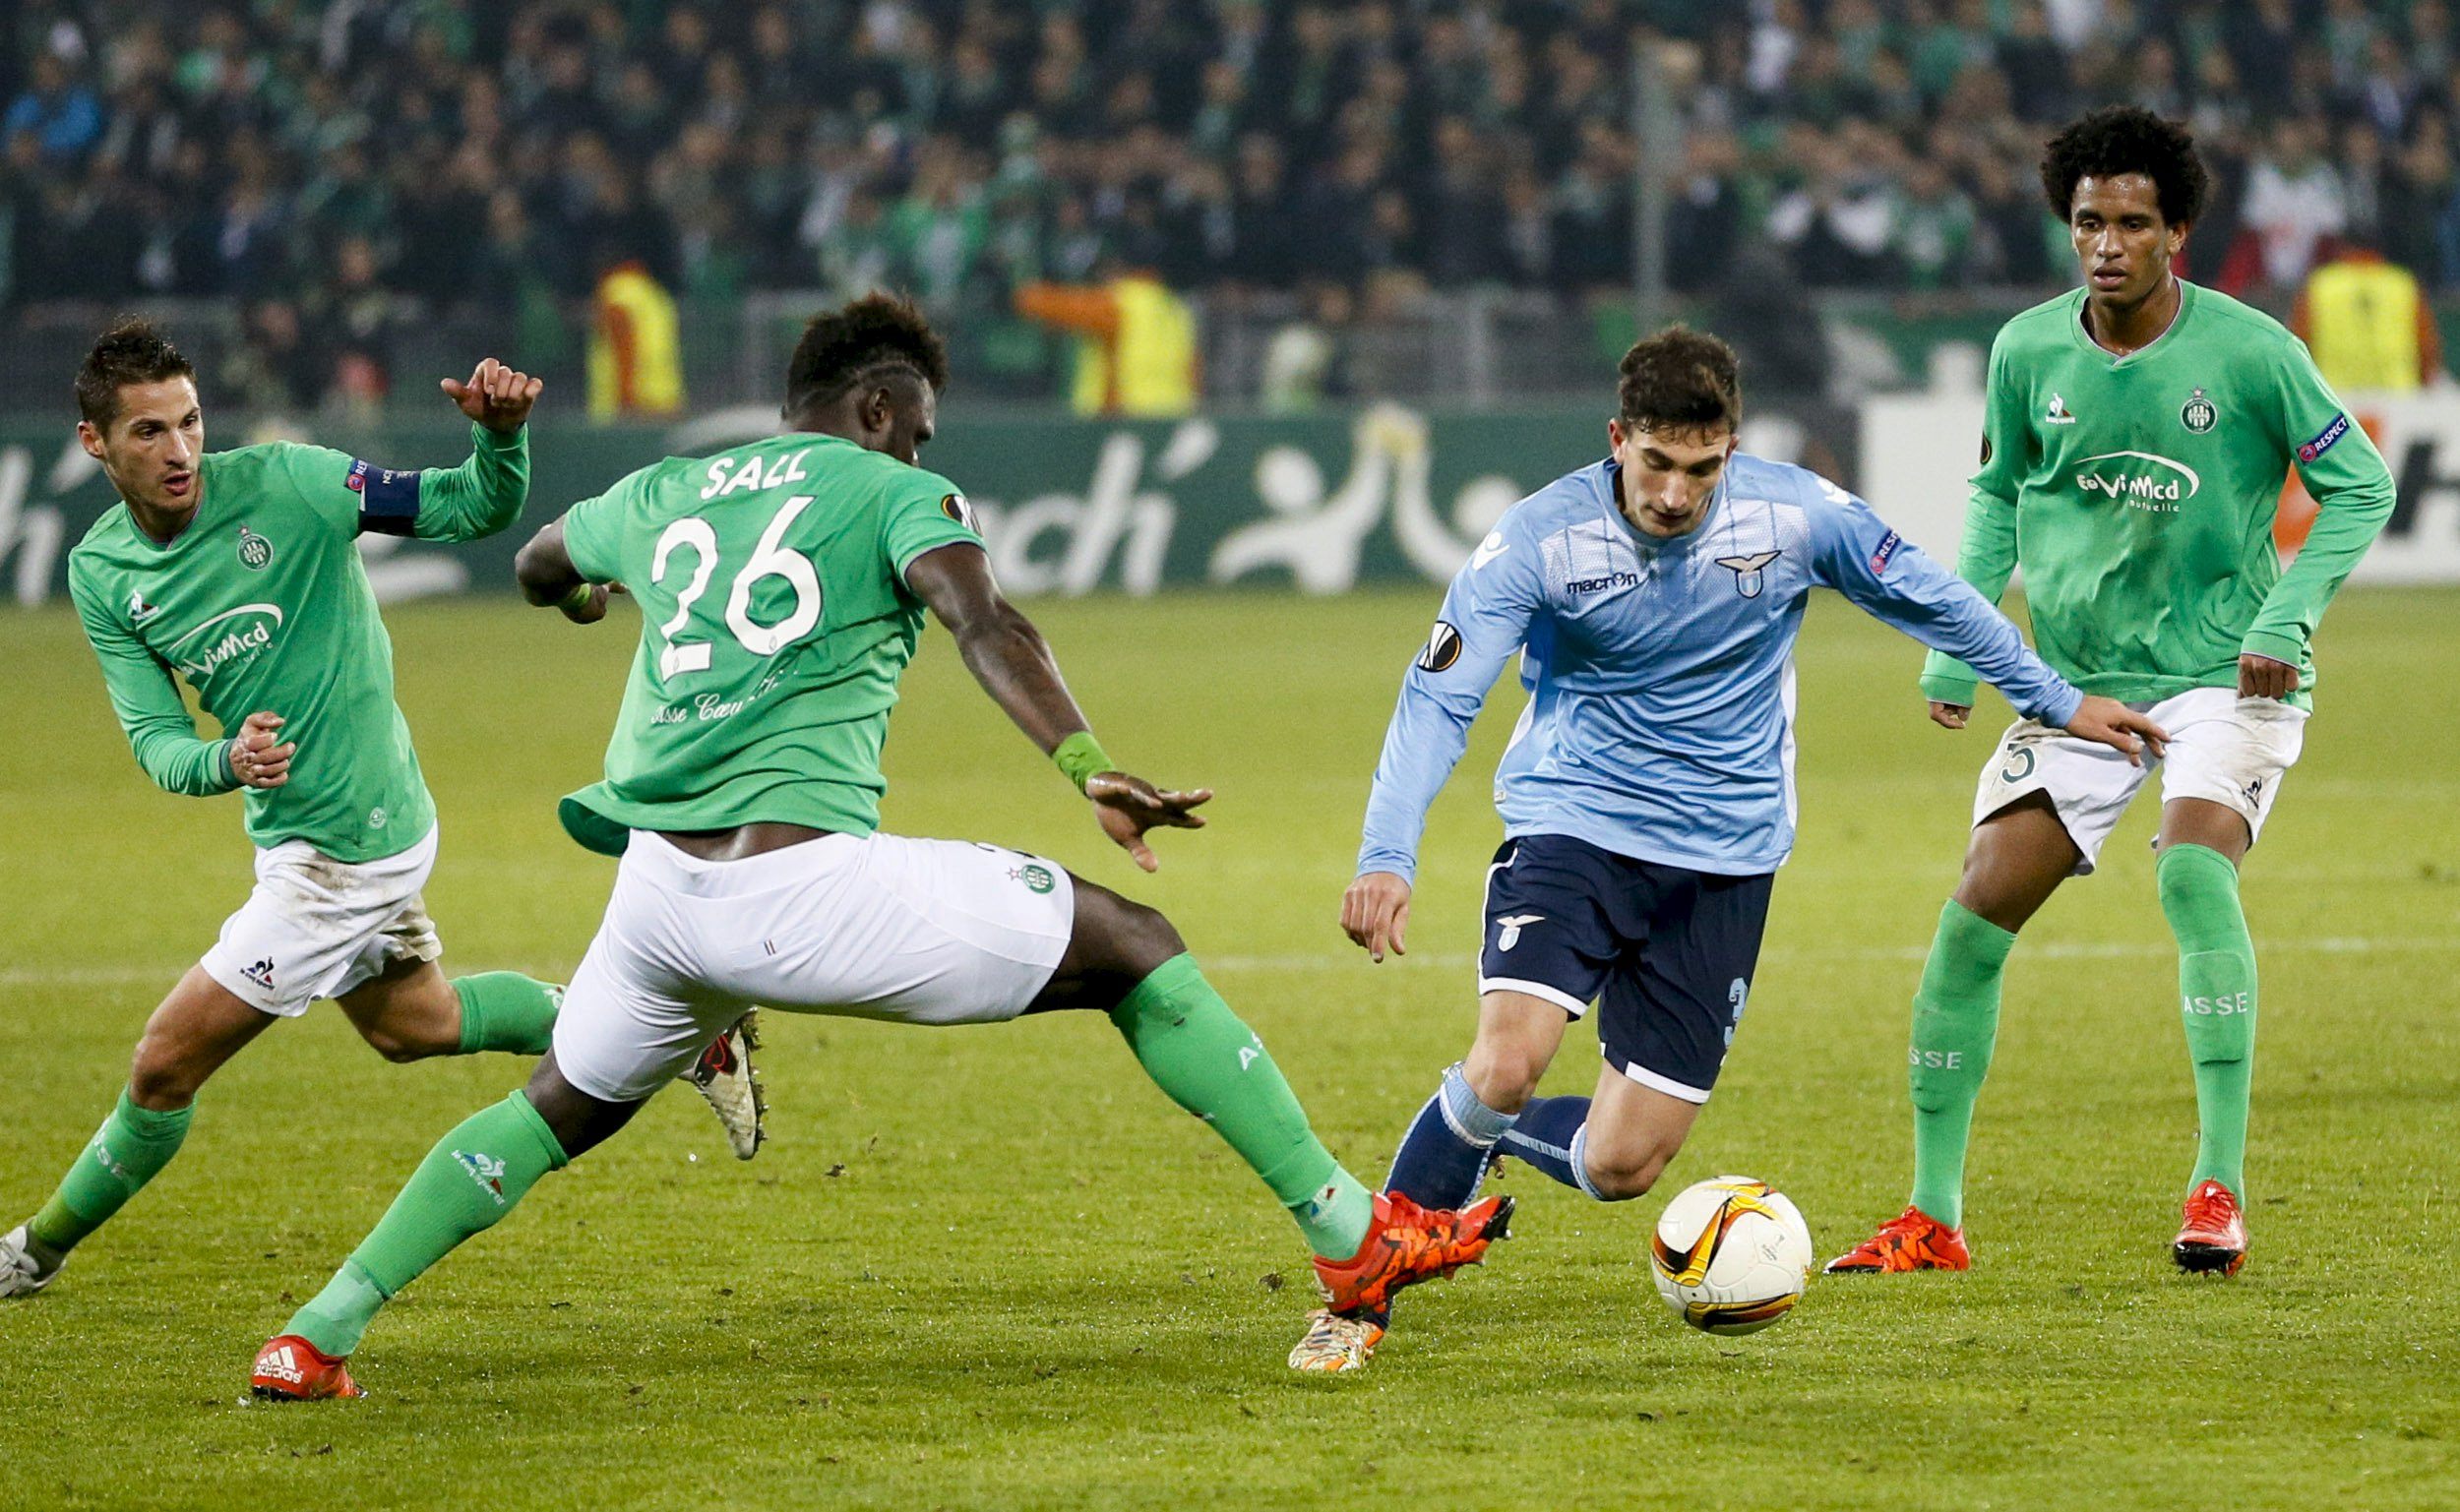 Etienne's Mustapha Bayal Sall (2nd L) in action against Lazio's Danilo Cataldi (2nd R) during Europa League game on Thursday, December 11, 2015. Photo: Reuters